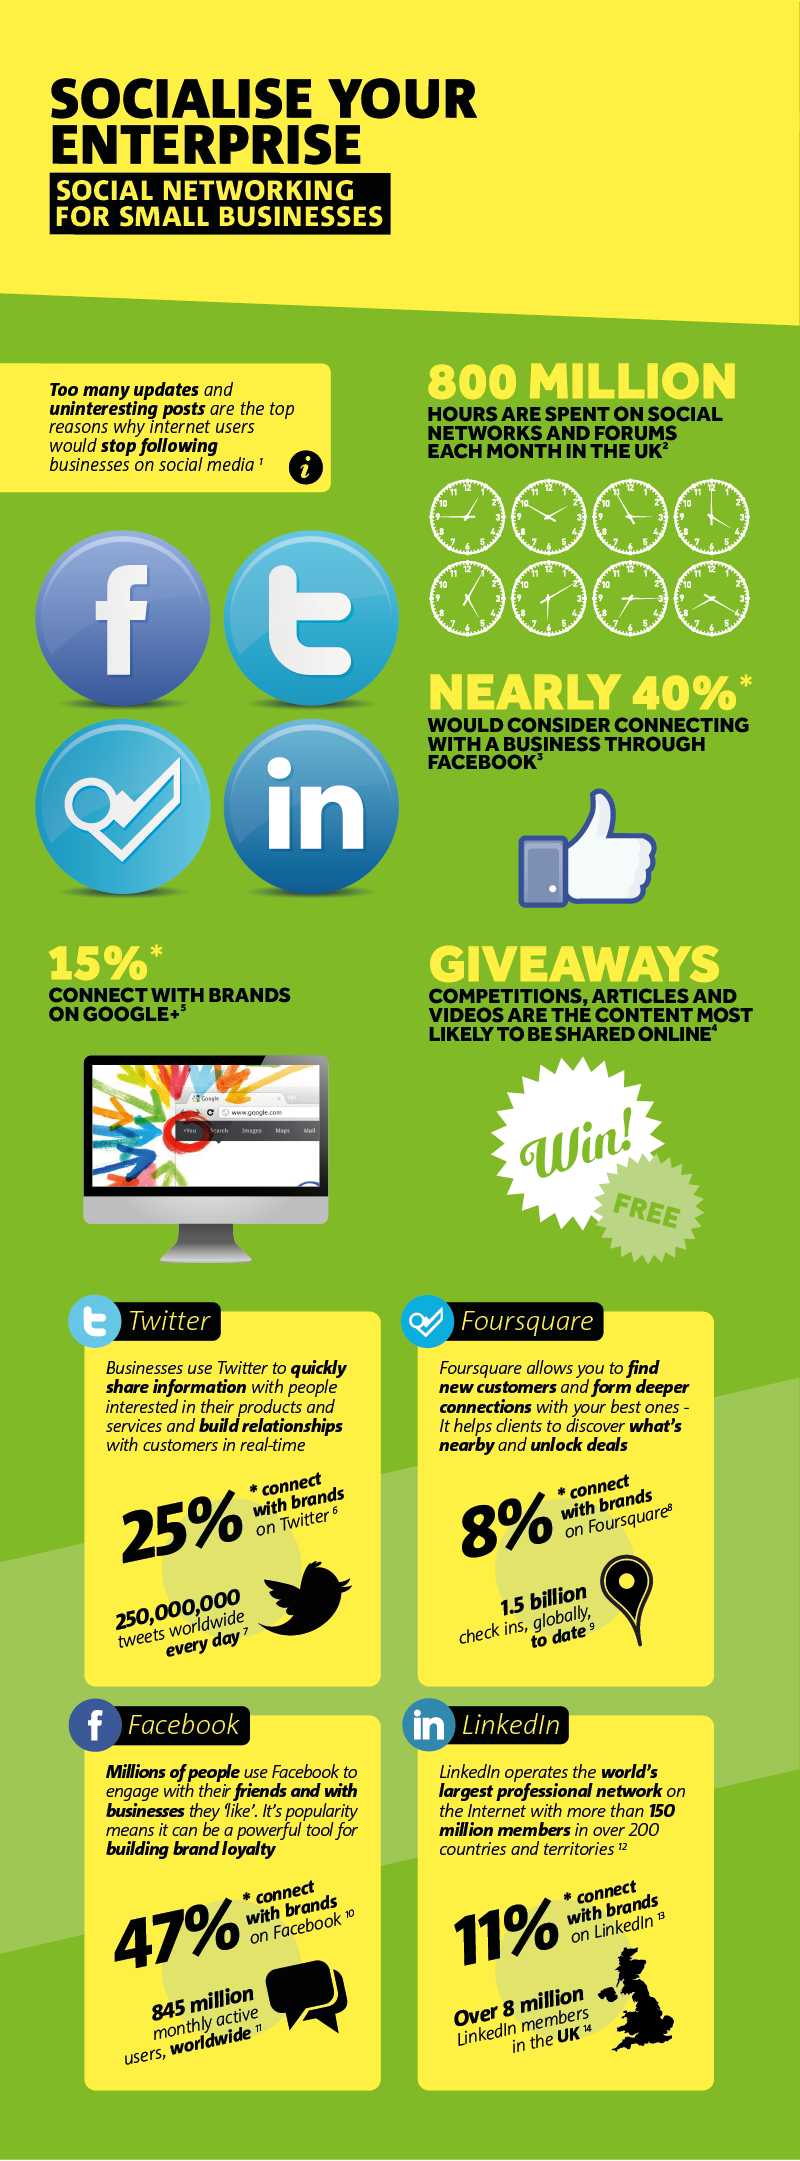 impact of social networking in small enterprises 2014-7-30 social networking tools often form part of online communities and it has been argued that these communities have the potential to radically transform.